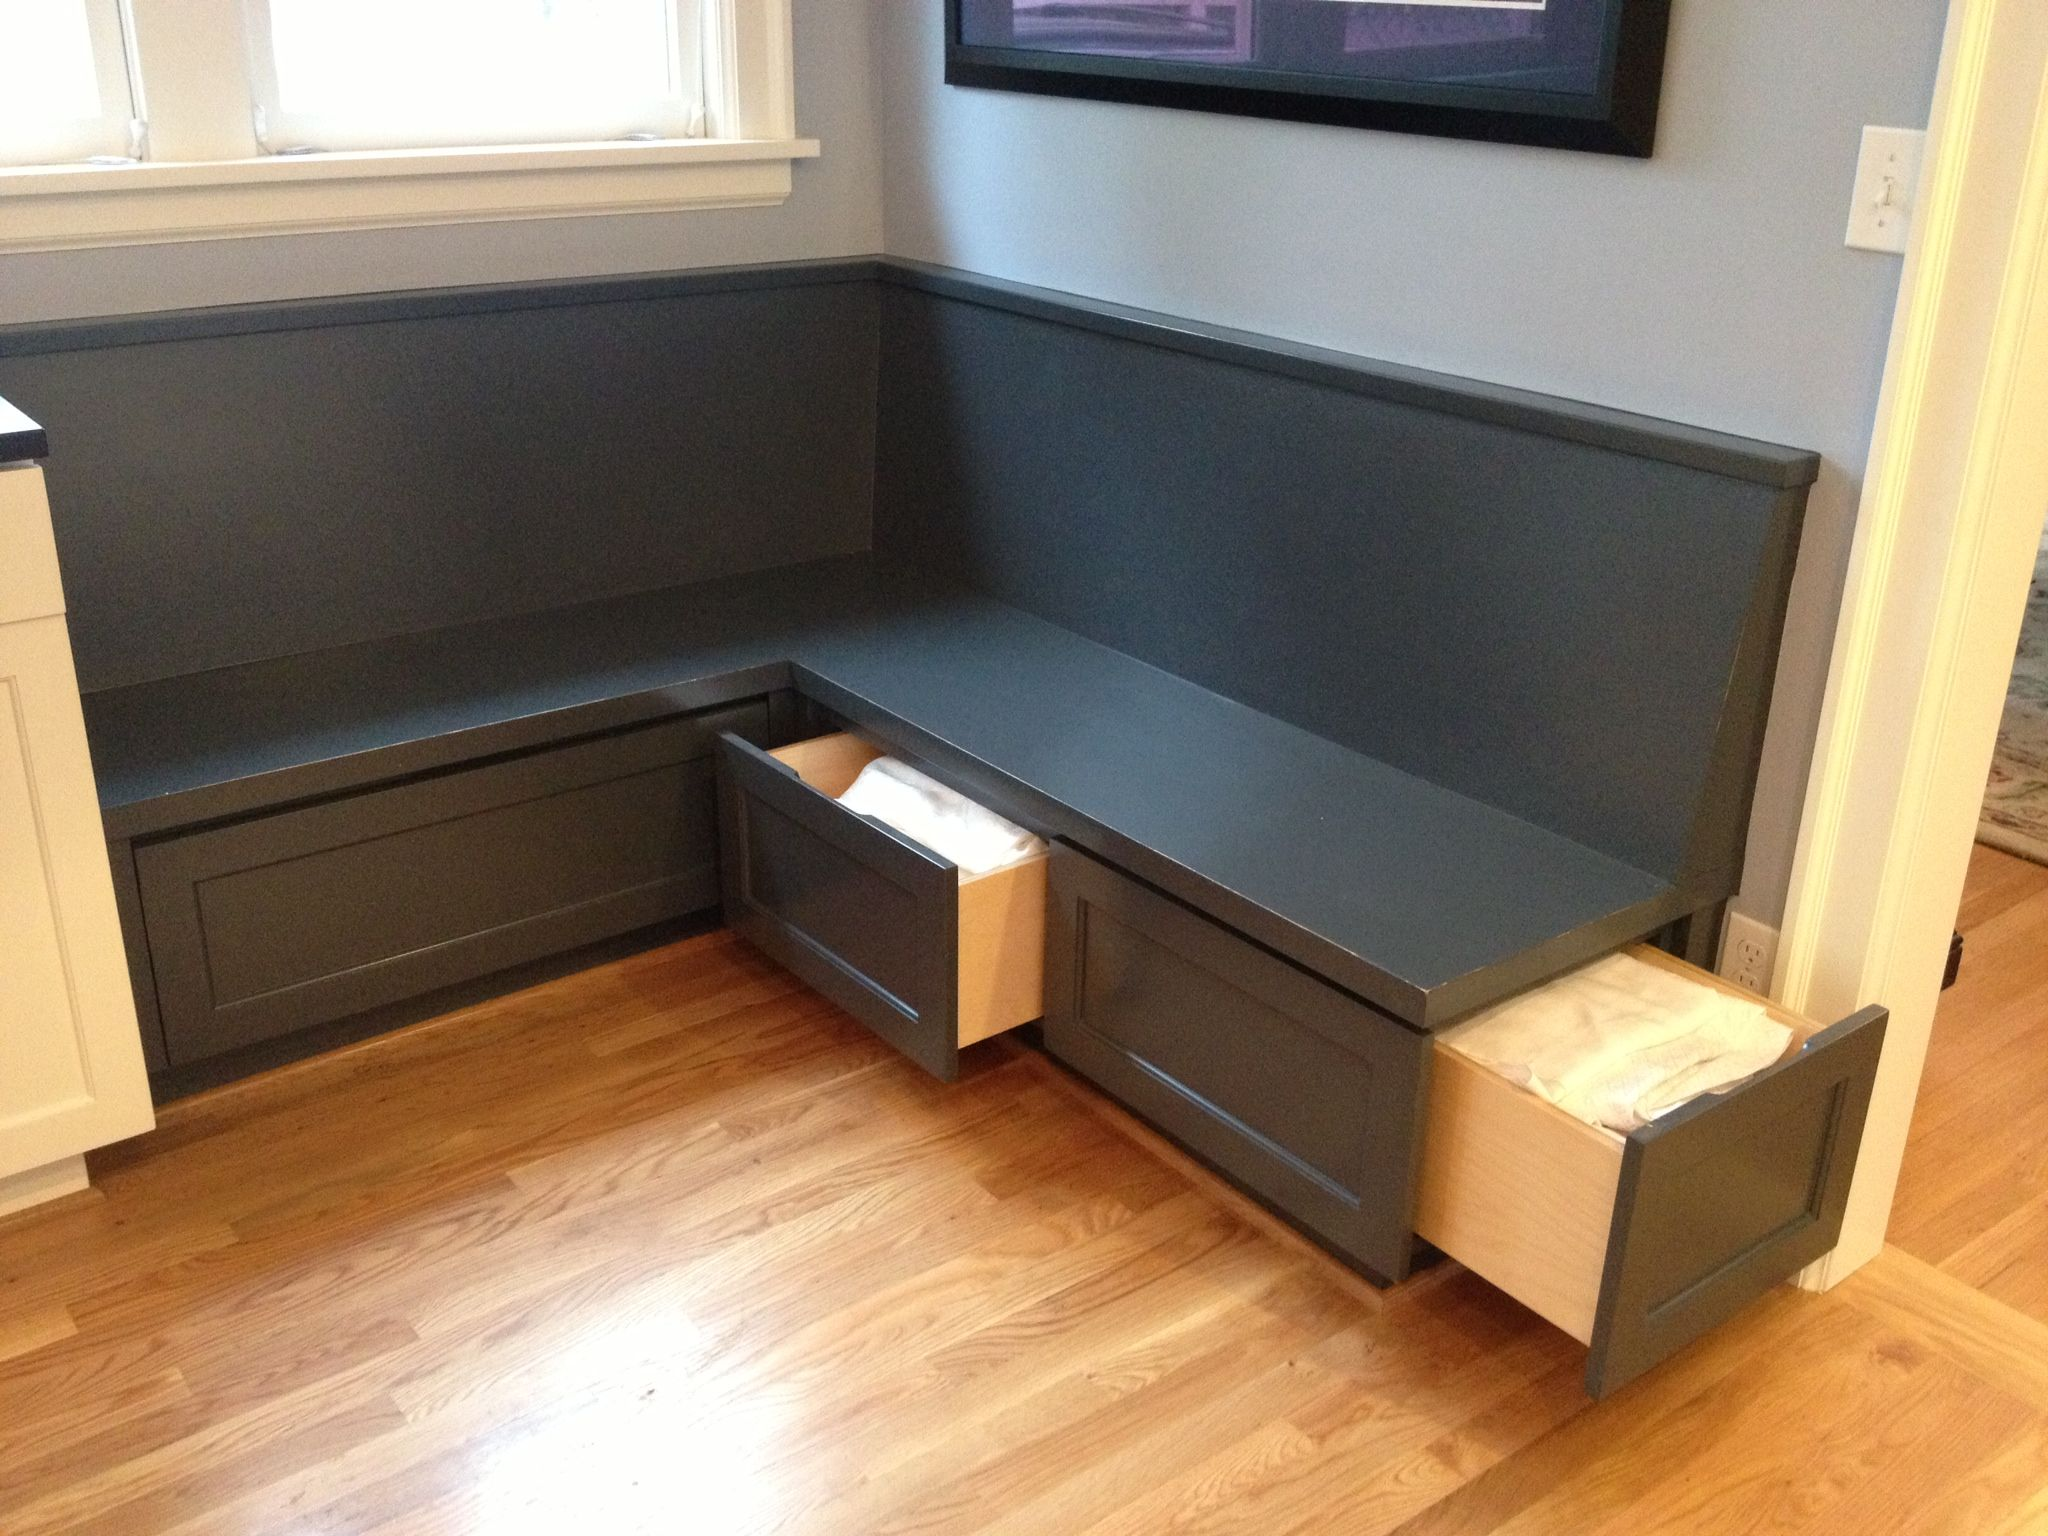 Banquette Bench With Storage 1920s Portland Home Custom Corner Banquette With Three Storage